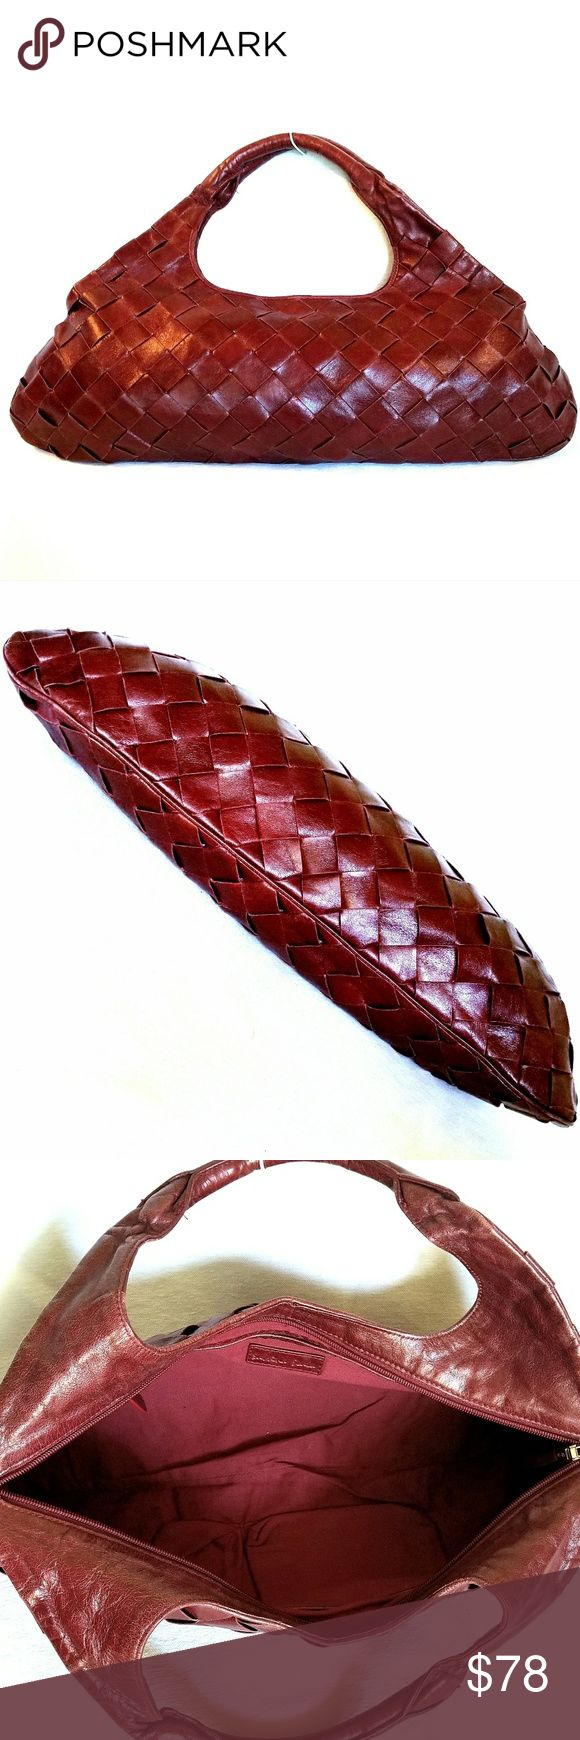 """SABRINA SCALA Statement Clutch DREAMY maroon/red, italian leather clutch in a basket-weave design by Sabrina Scala will floor you when you see it in person! It is honestly stunning. It's horizontal length alone, a whopping 21"""", makes this bag a bonifide statement piece! SABRINA Scala Bags"""